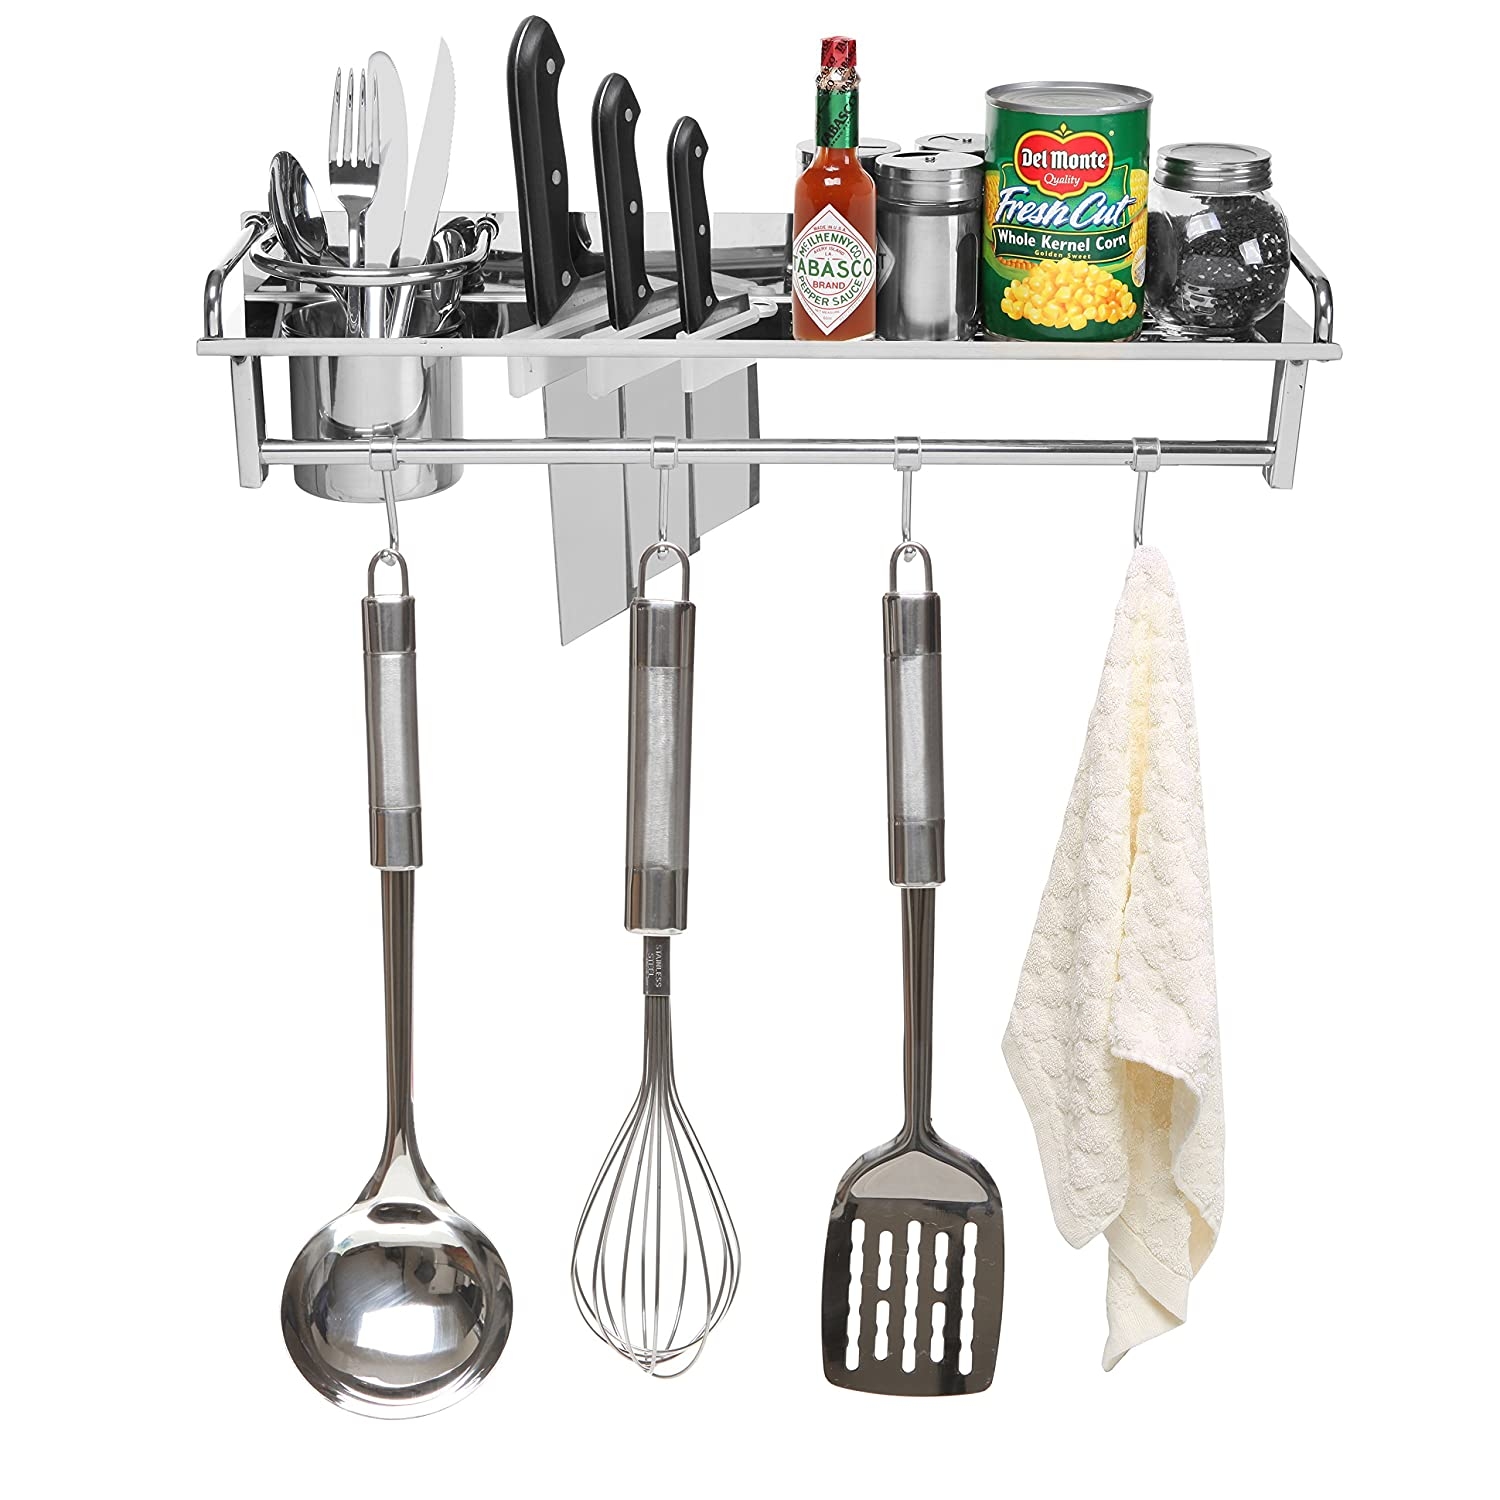 Amazon.com: Chrome Wall Mounted Kitchen Spice Rack W/ Utensil / Pot / Pan  Hanger Hooks, Silverware Caddy, Knife Slots: Kitchen U0026 Dining